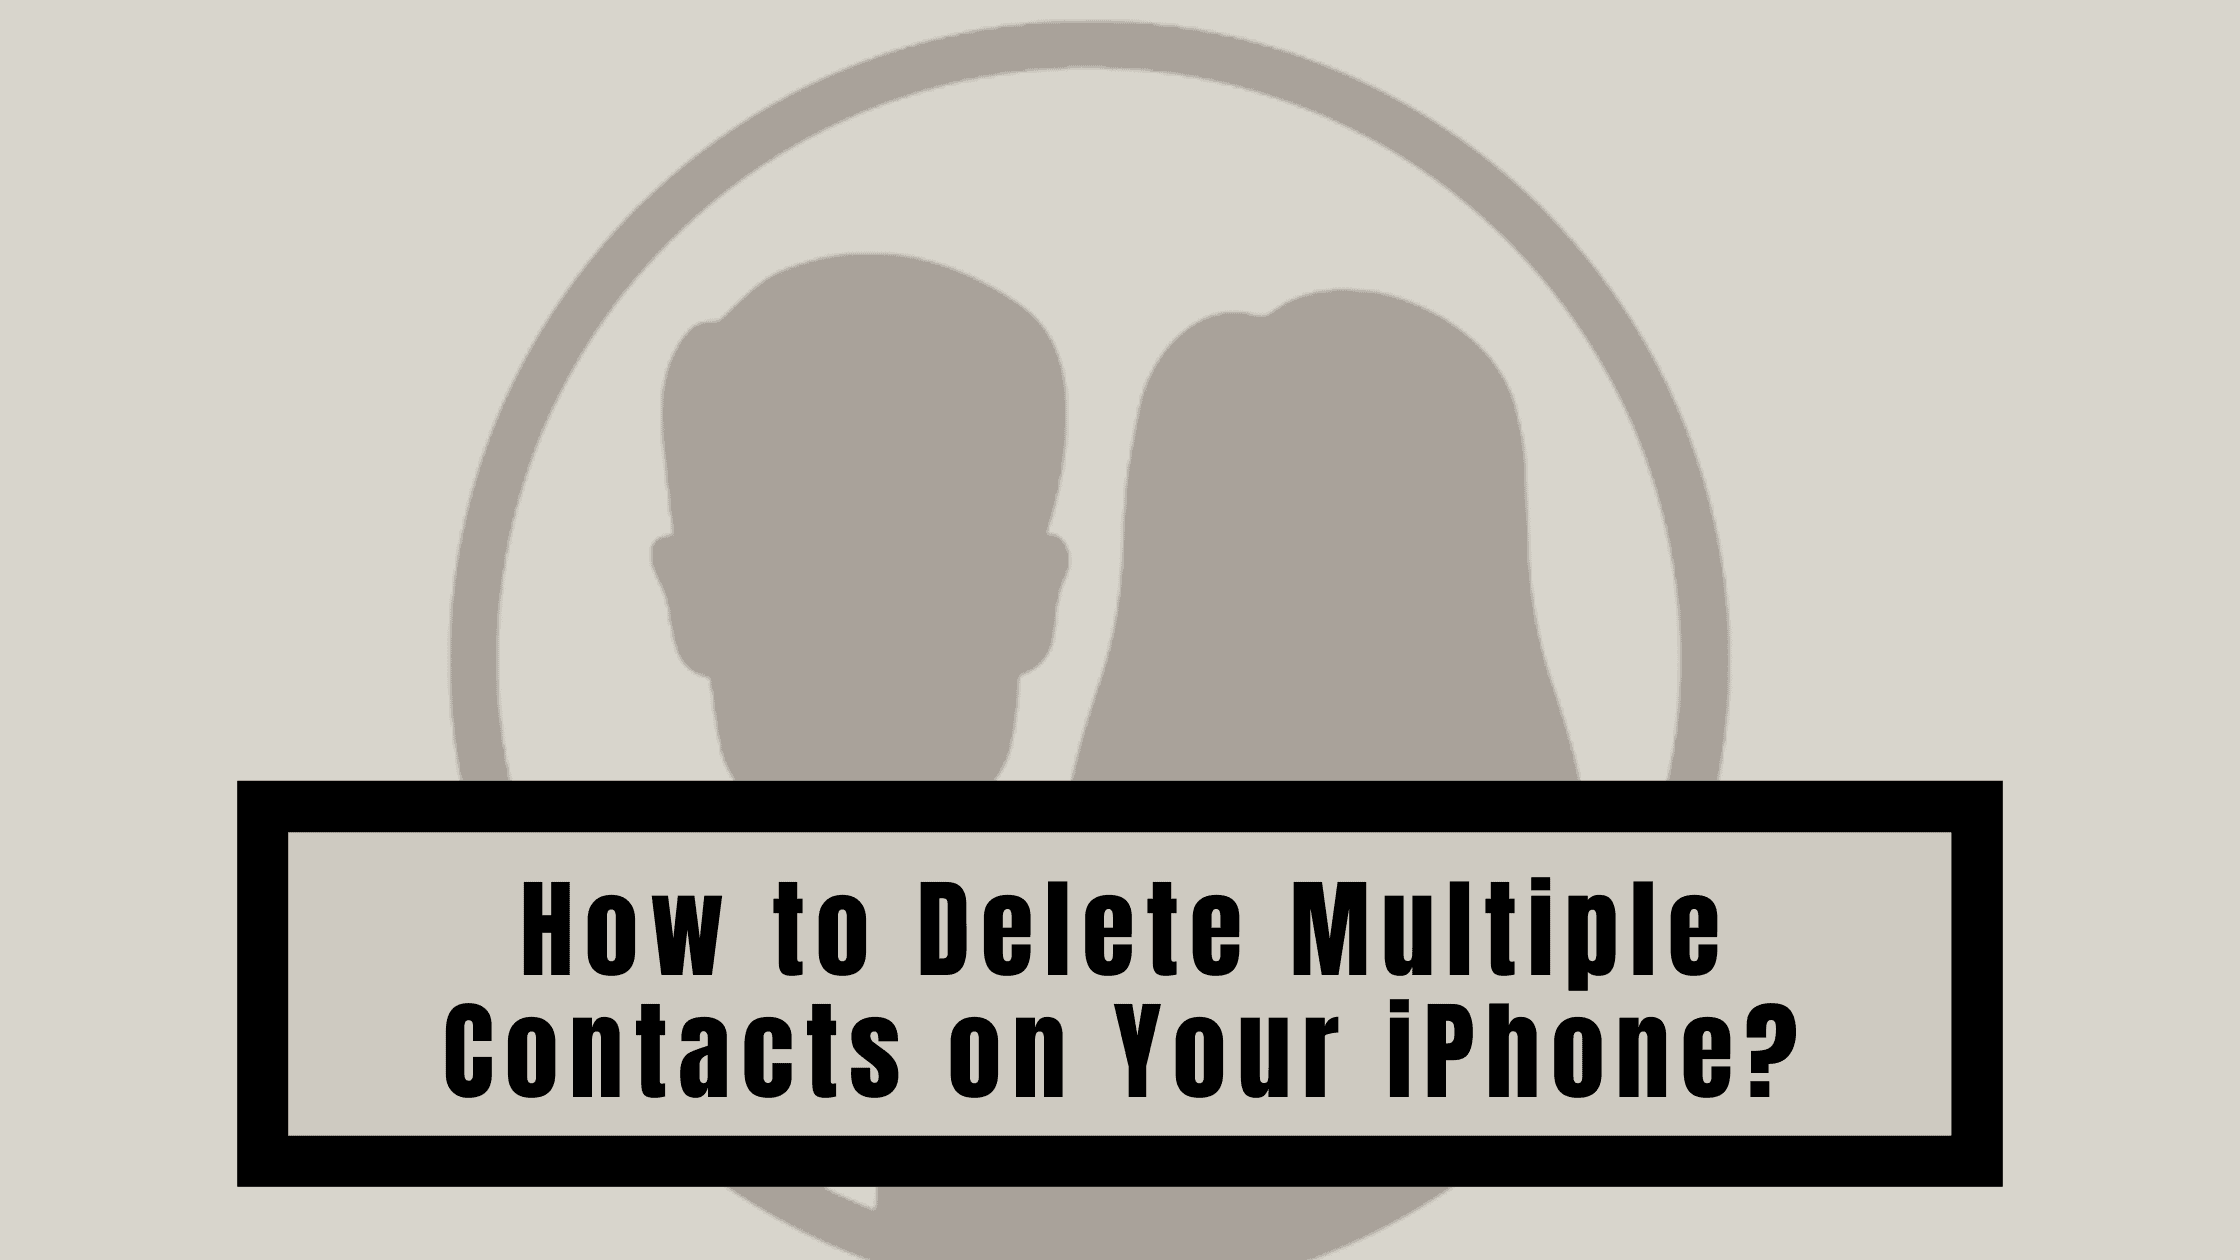 How to Delete Multiple Contacts on Your iPhone